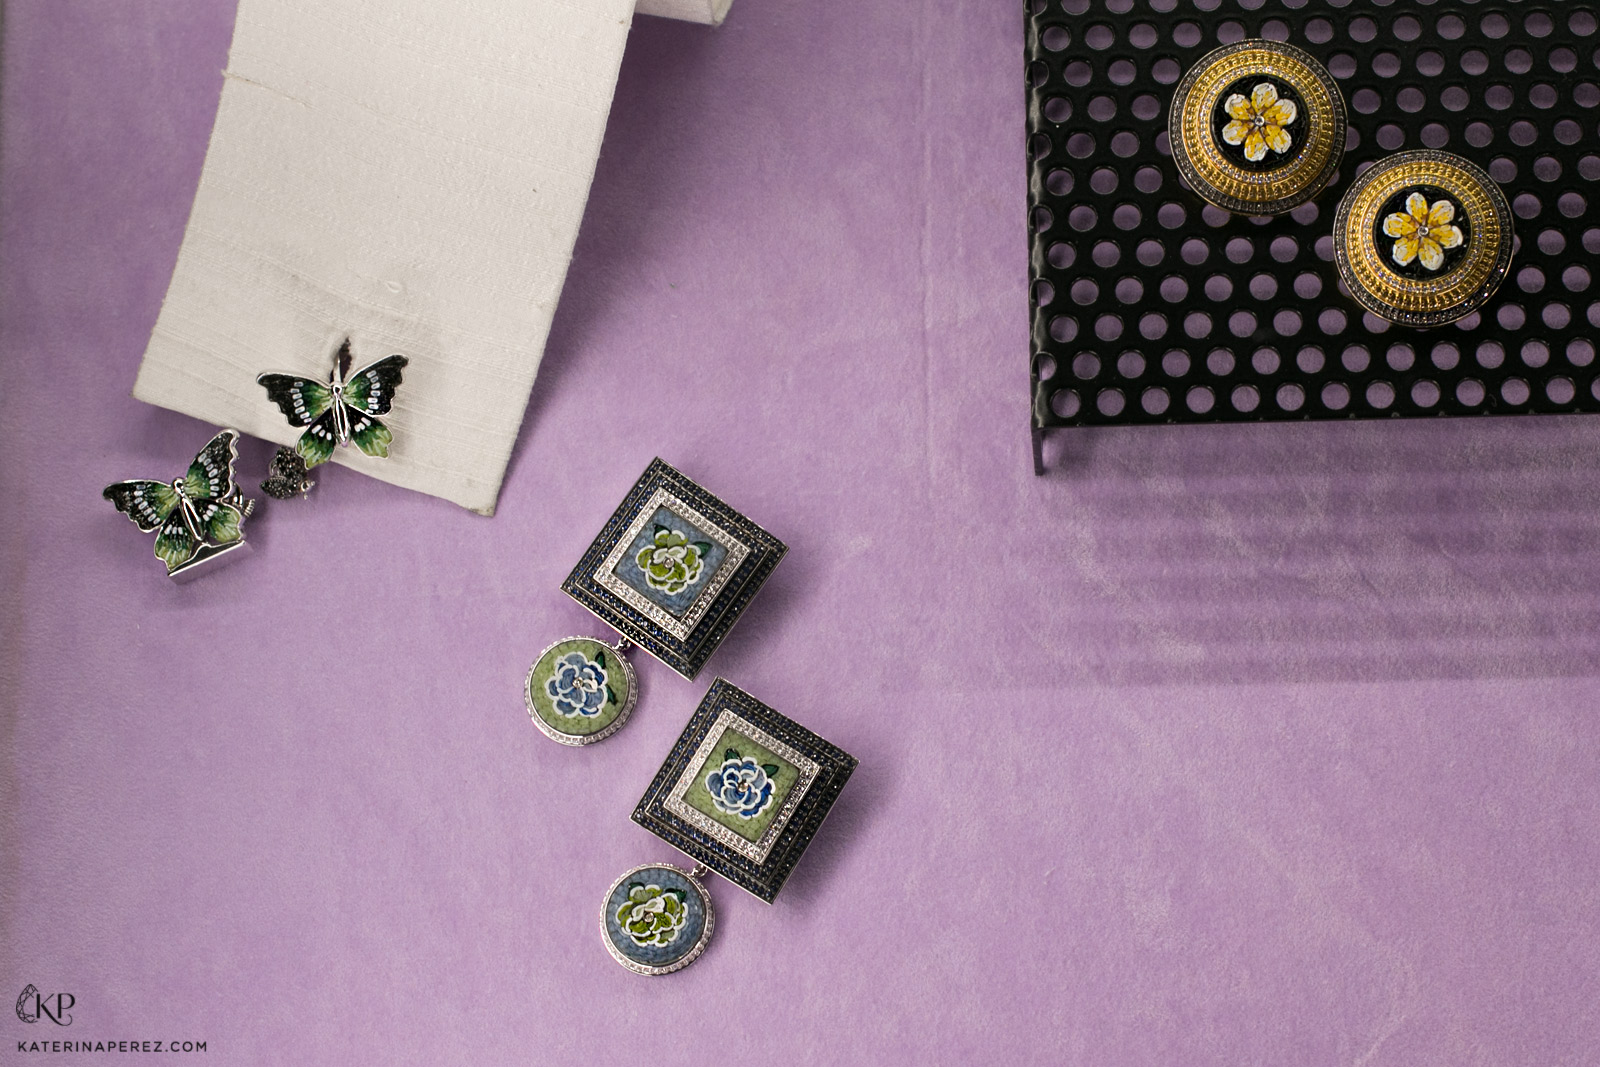 SICIS cufflinks with micromosaic